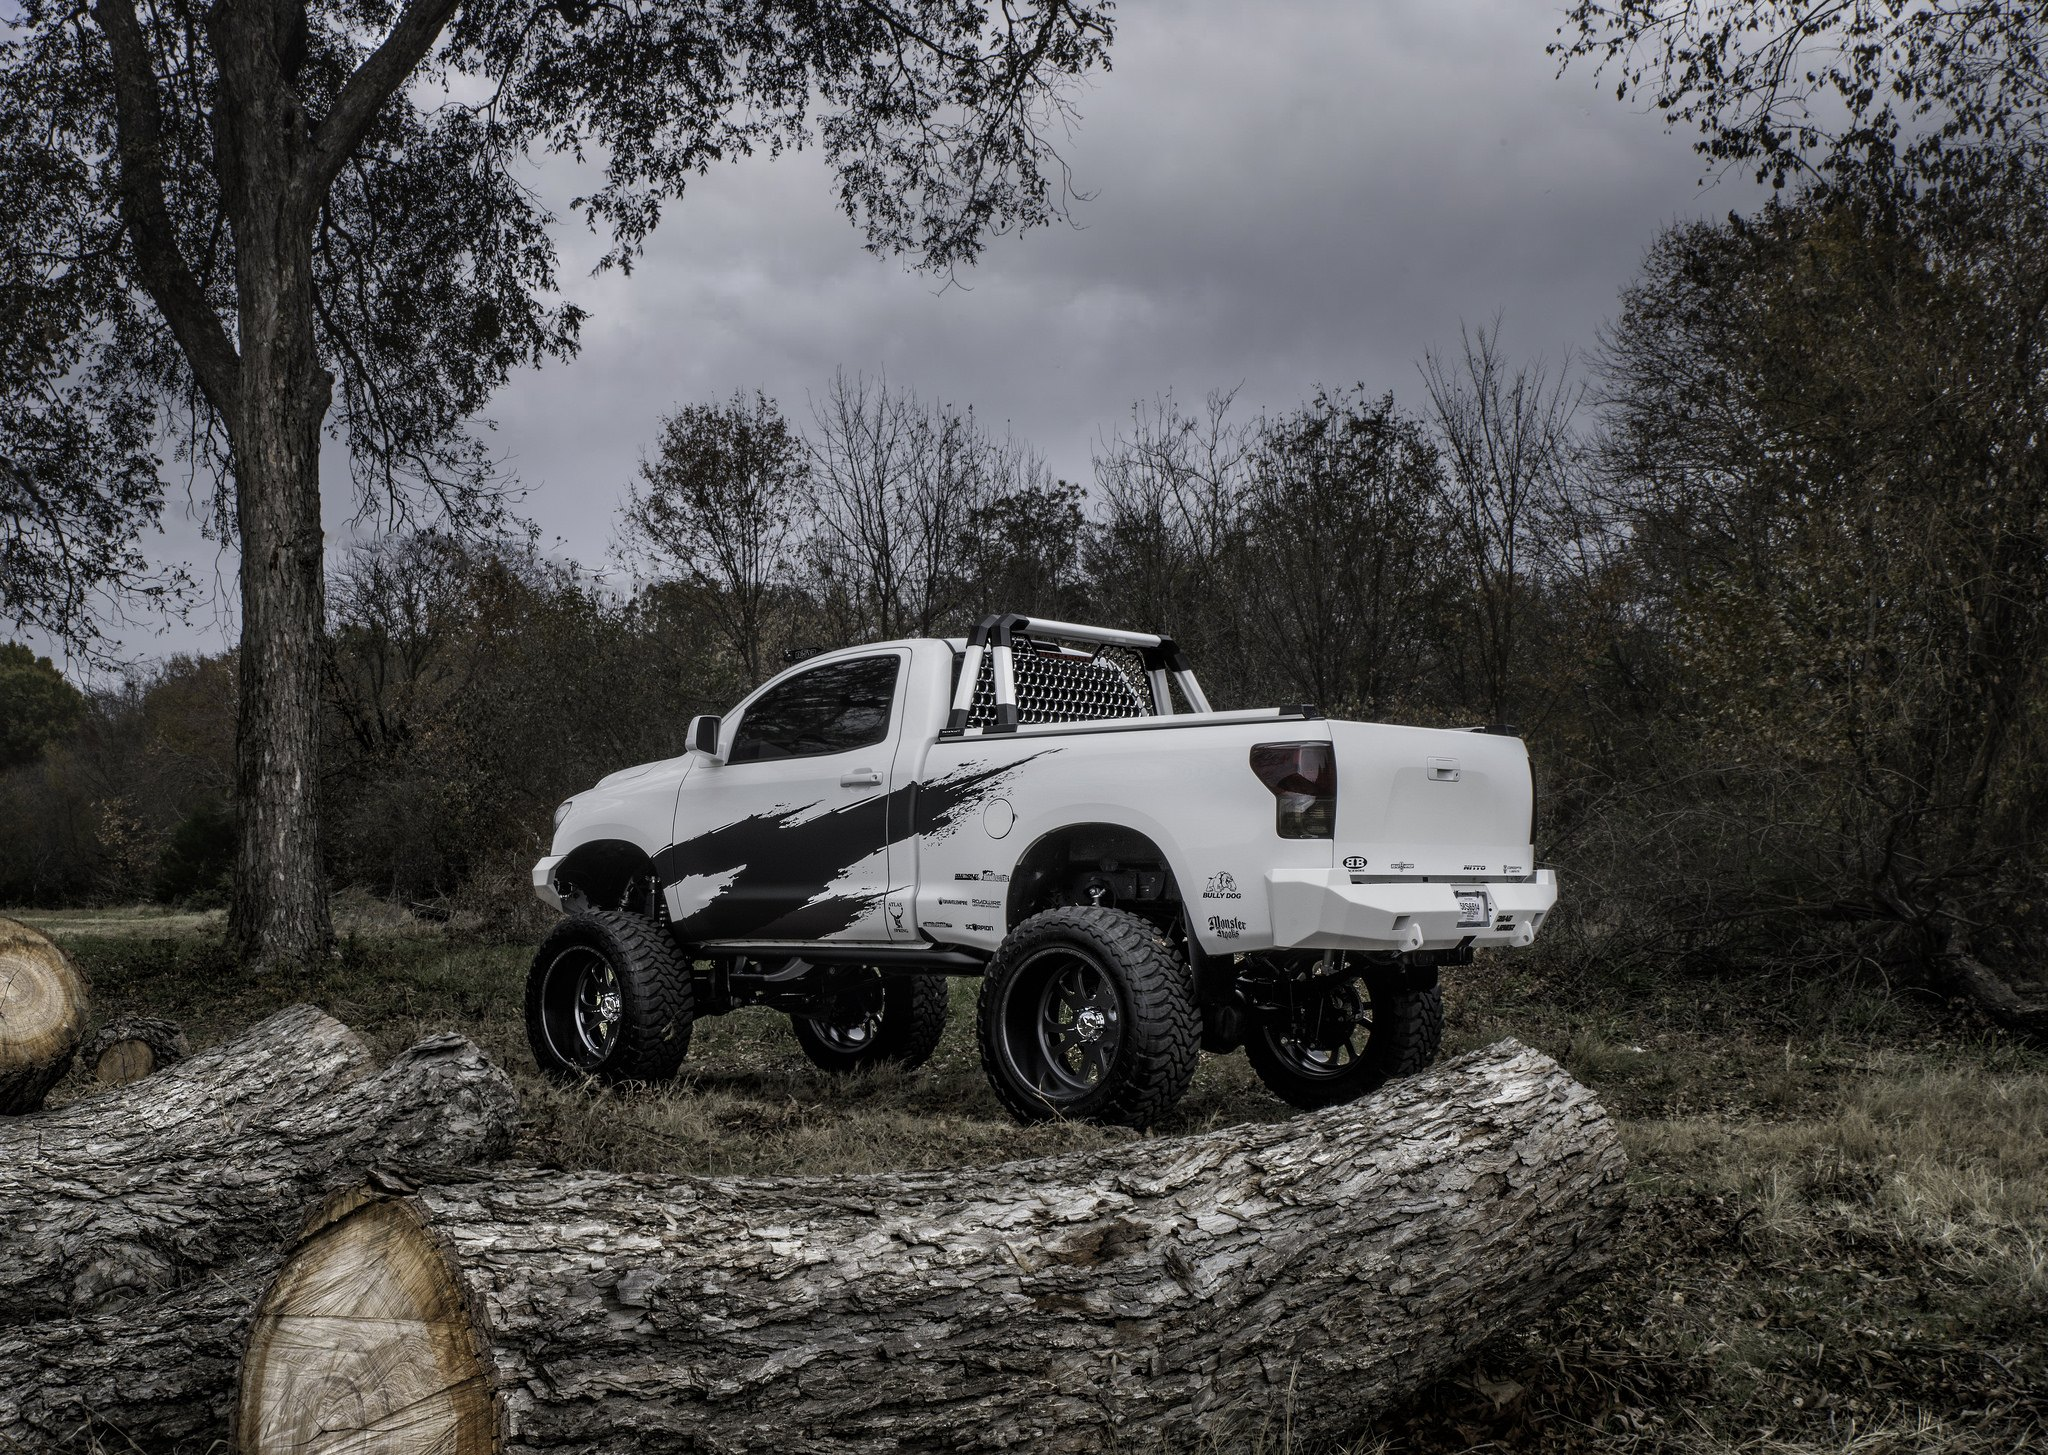 Fully Loaded Short Bed Regular Cab Tundra With Lift and froad